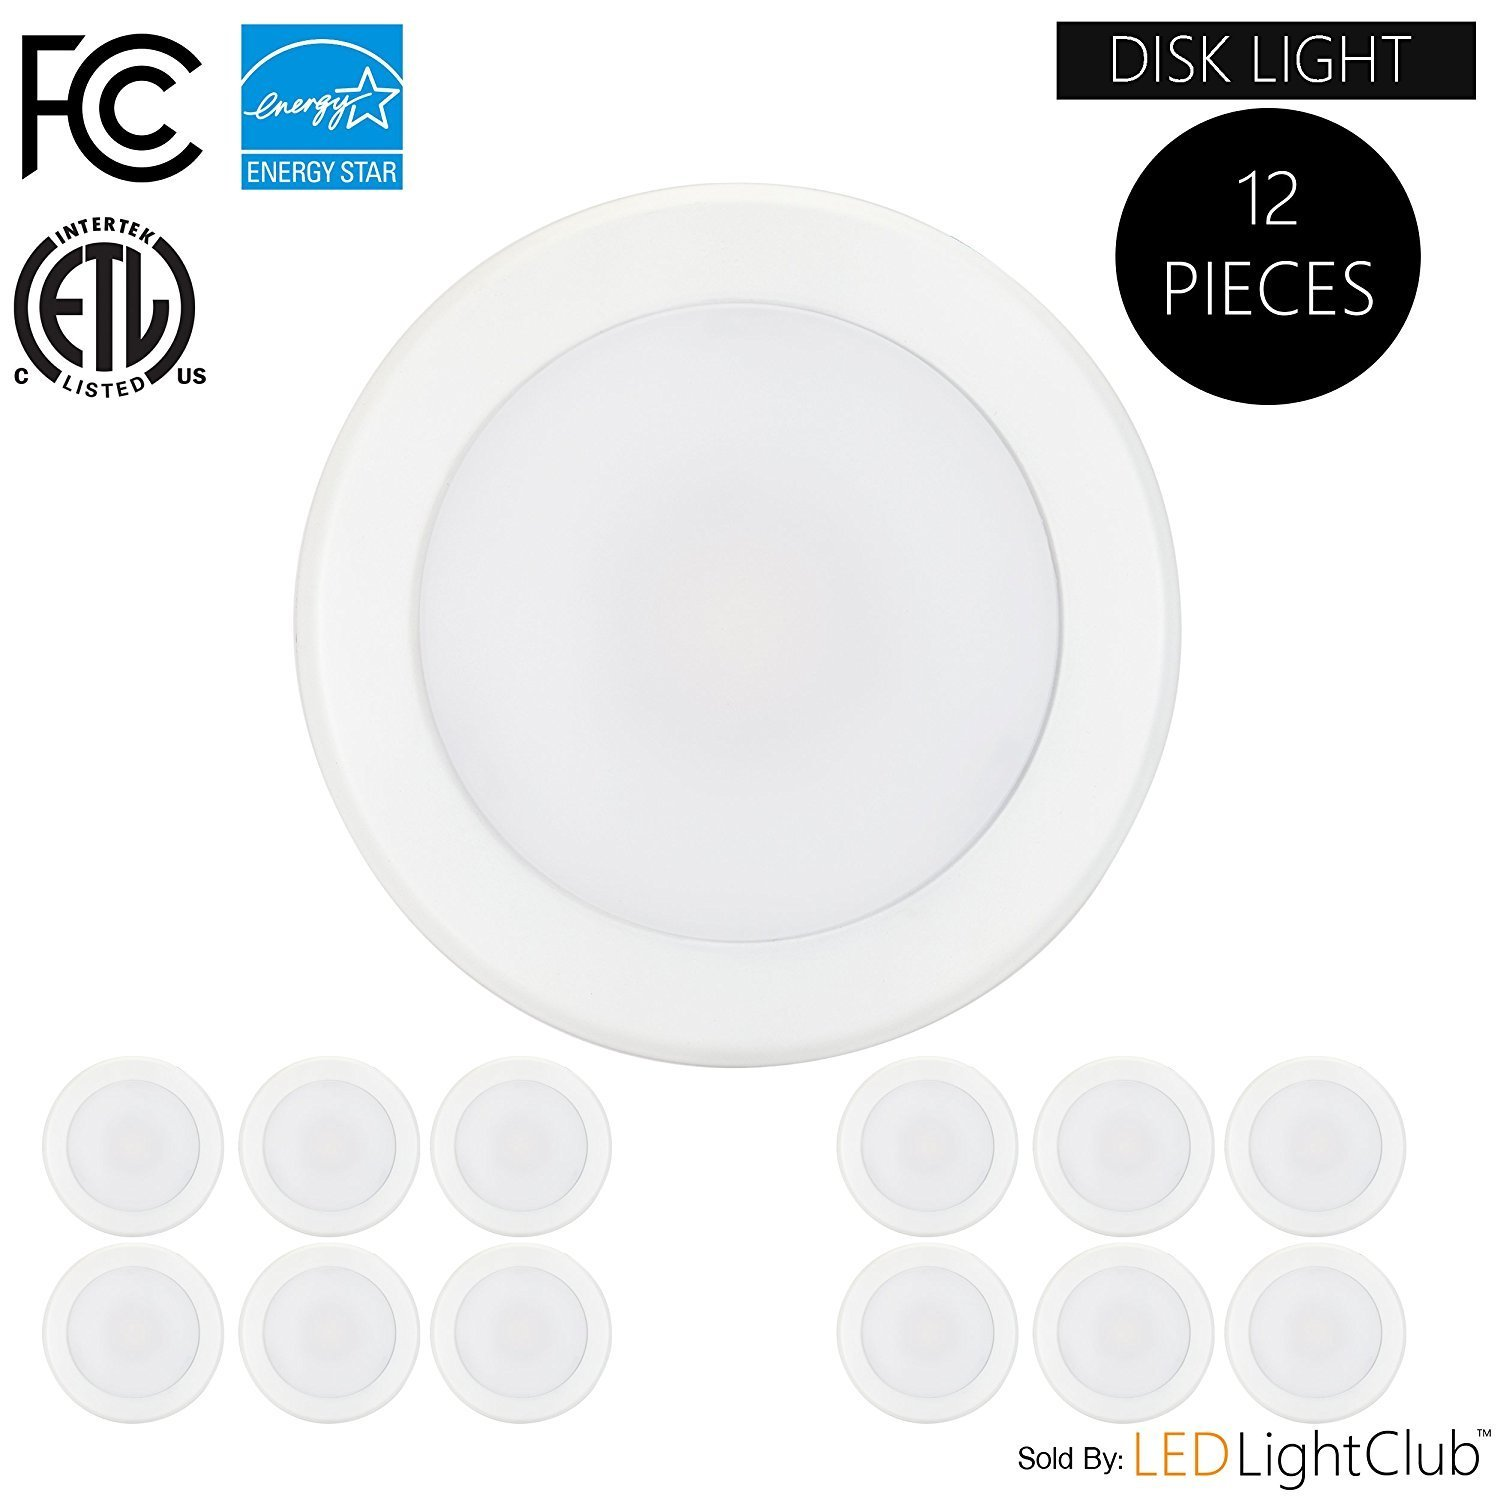 """(12-Pack)- 5/6"""" Dimmable LED Disk Light Flush Mount Ceiling Fixture, 15W (120W Replacement), 5000K (Day Light), ENERGY STAR, Installs into Junction Box Or Recessed Can, 1200Lm"""